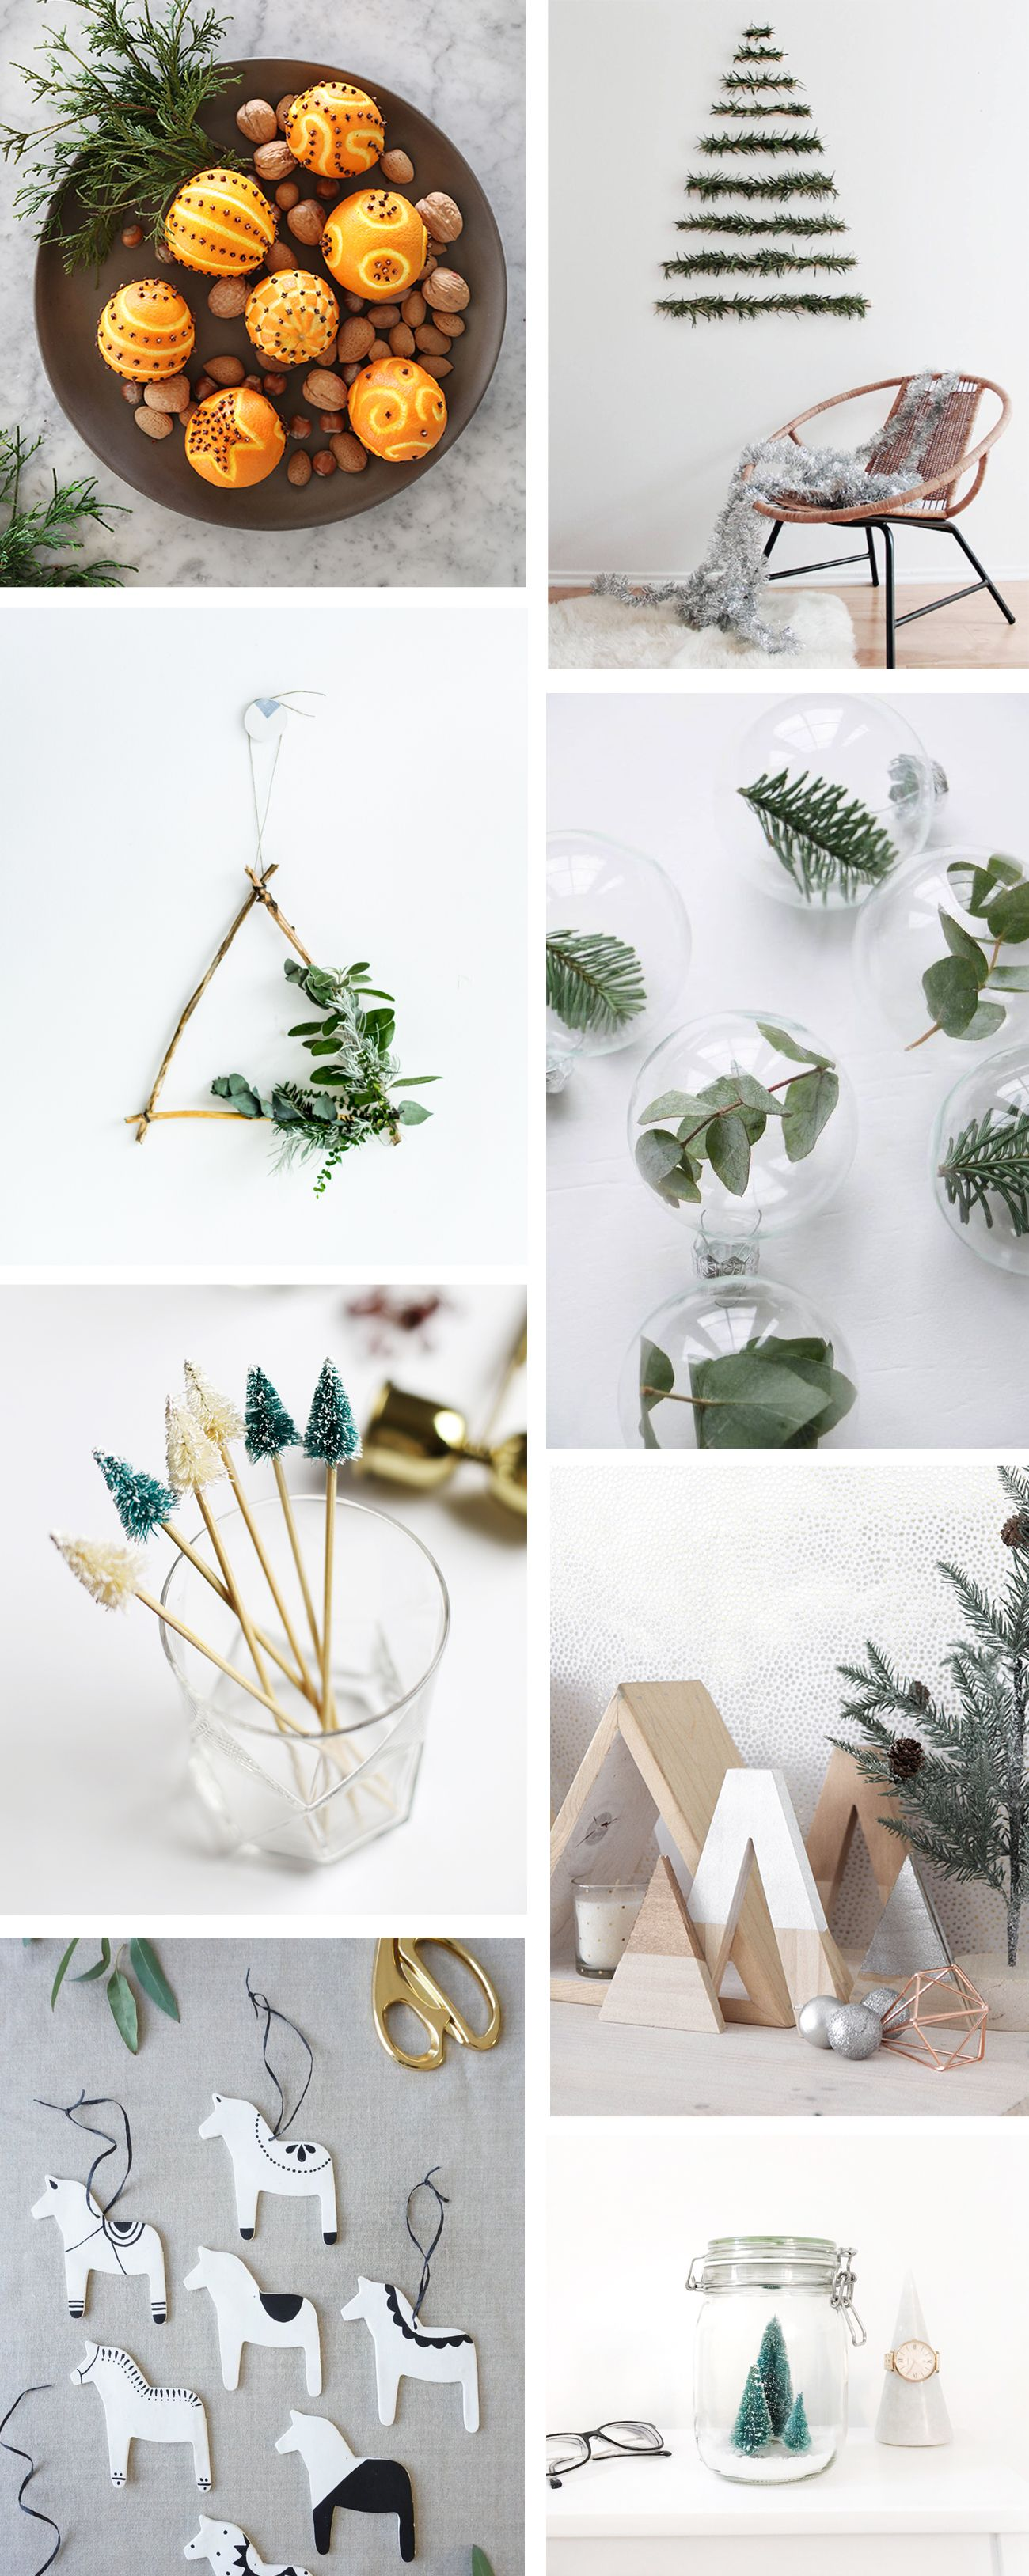 Get Inspired Christmas Diy Decor Ideas With A Nordic Look Scandinavian Christmas Diy Scandinavian Christmas Decorations Christmas Scandinavian Style